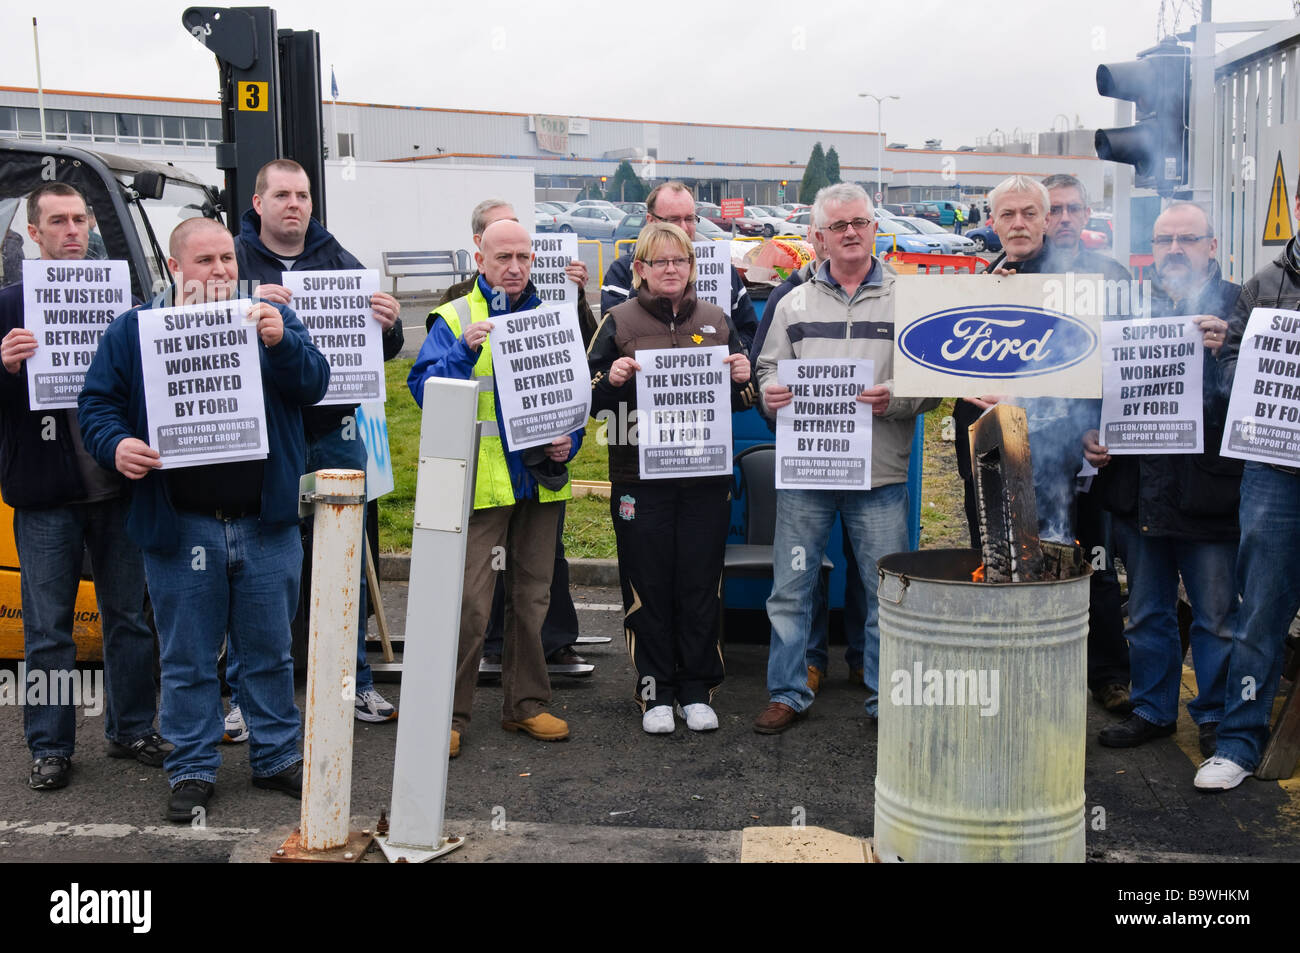 Workers demonstrate against redundancies at a Ford factory by holiding up posters asking for support. - Stock Image